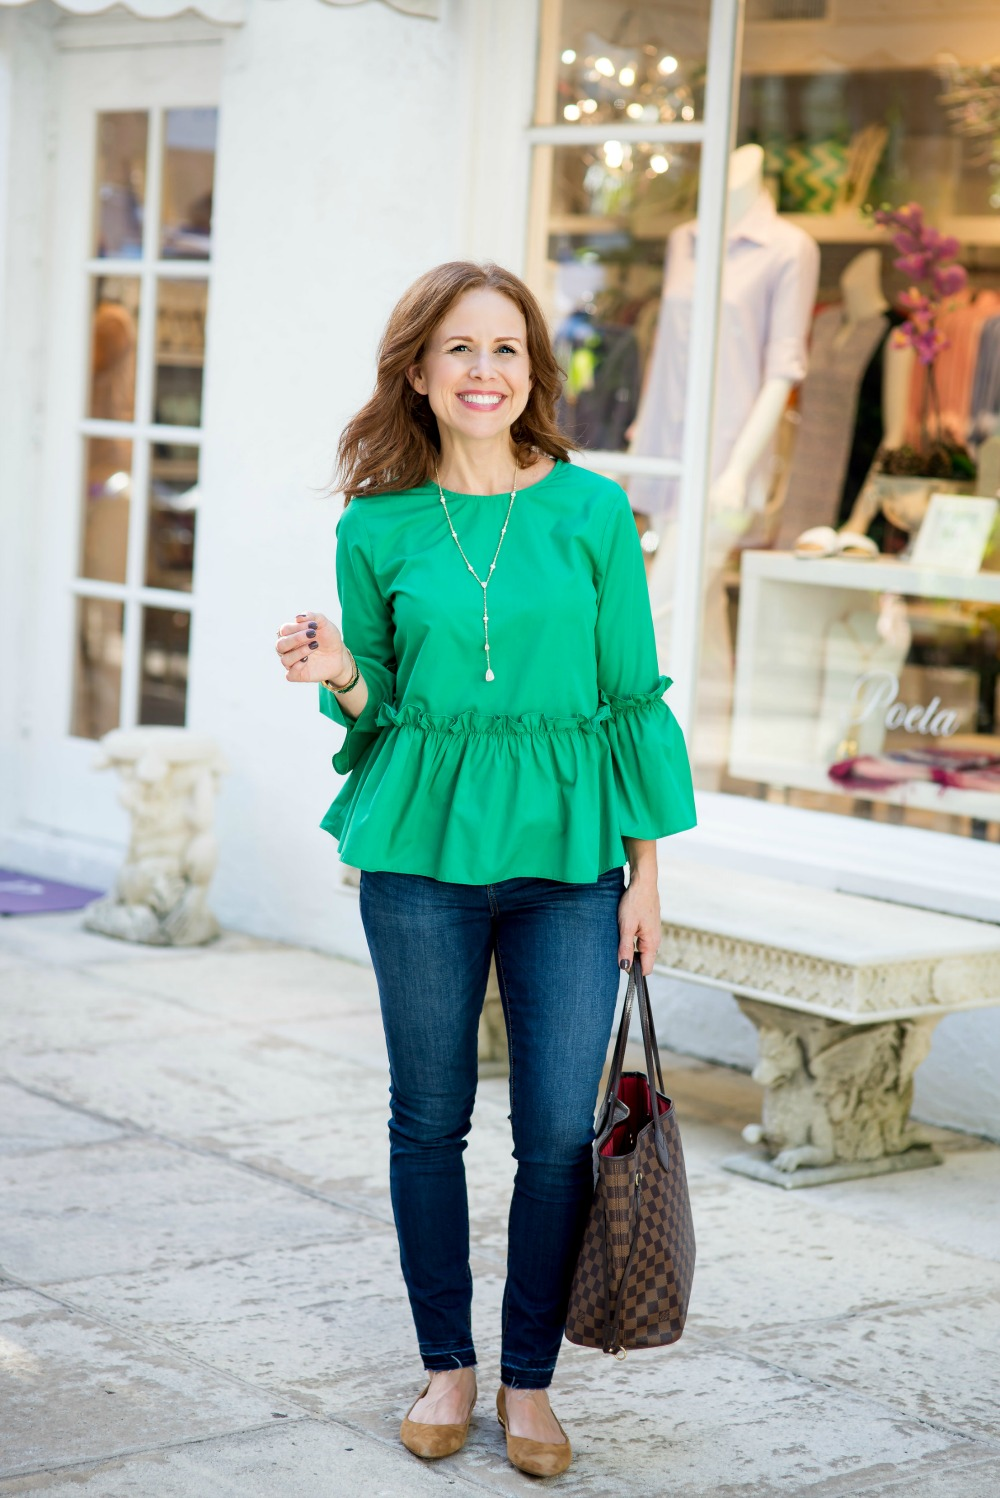 Easy outfit ideas for a work from home mom, or